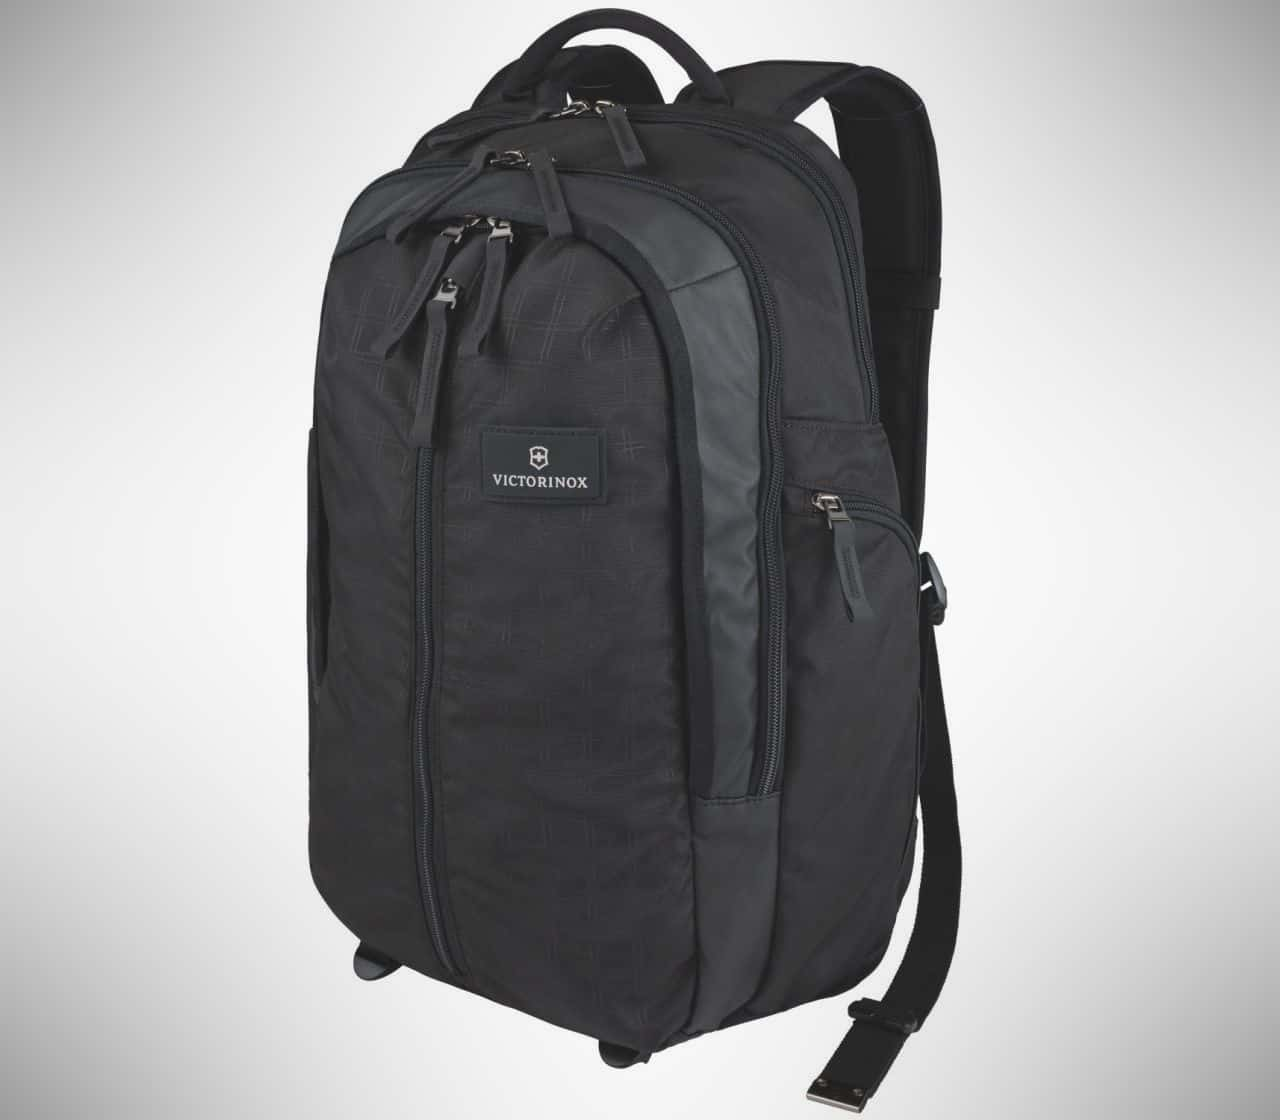 Victorinox Altmont 3.0 Deluxe Laptop Backpack – mens backpack for work